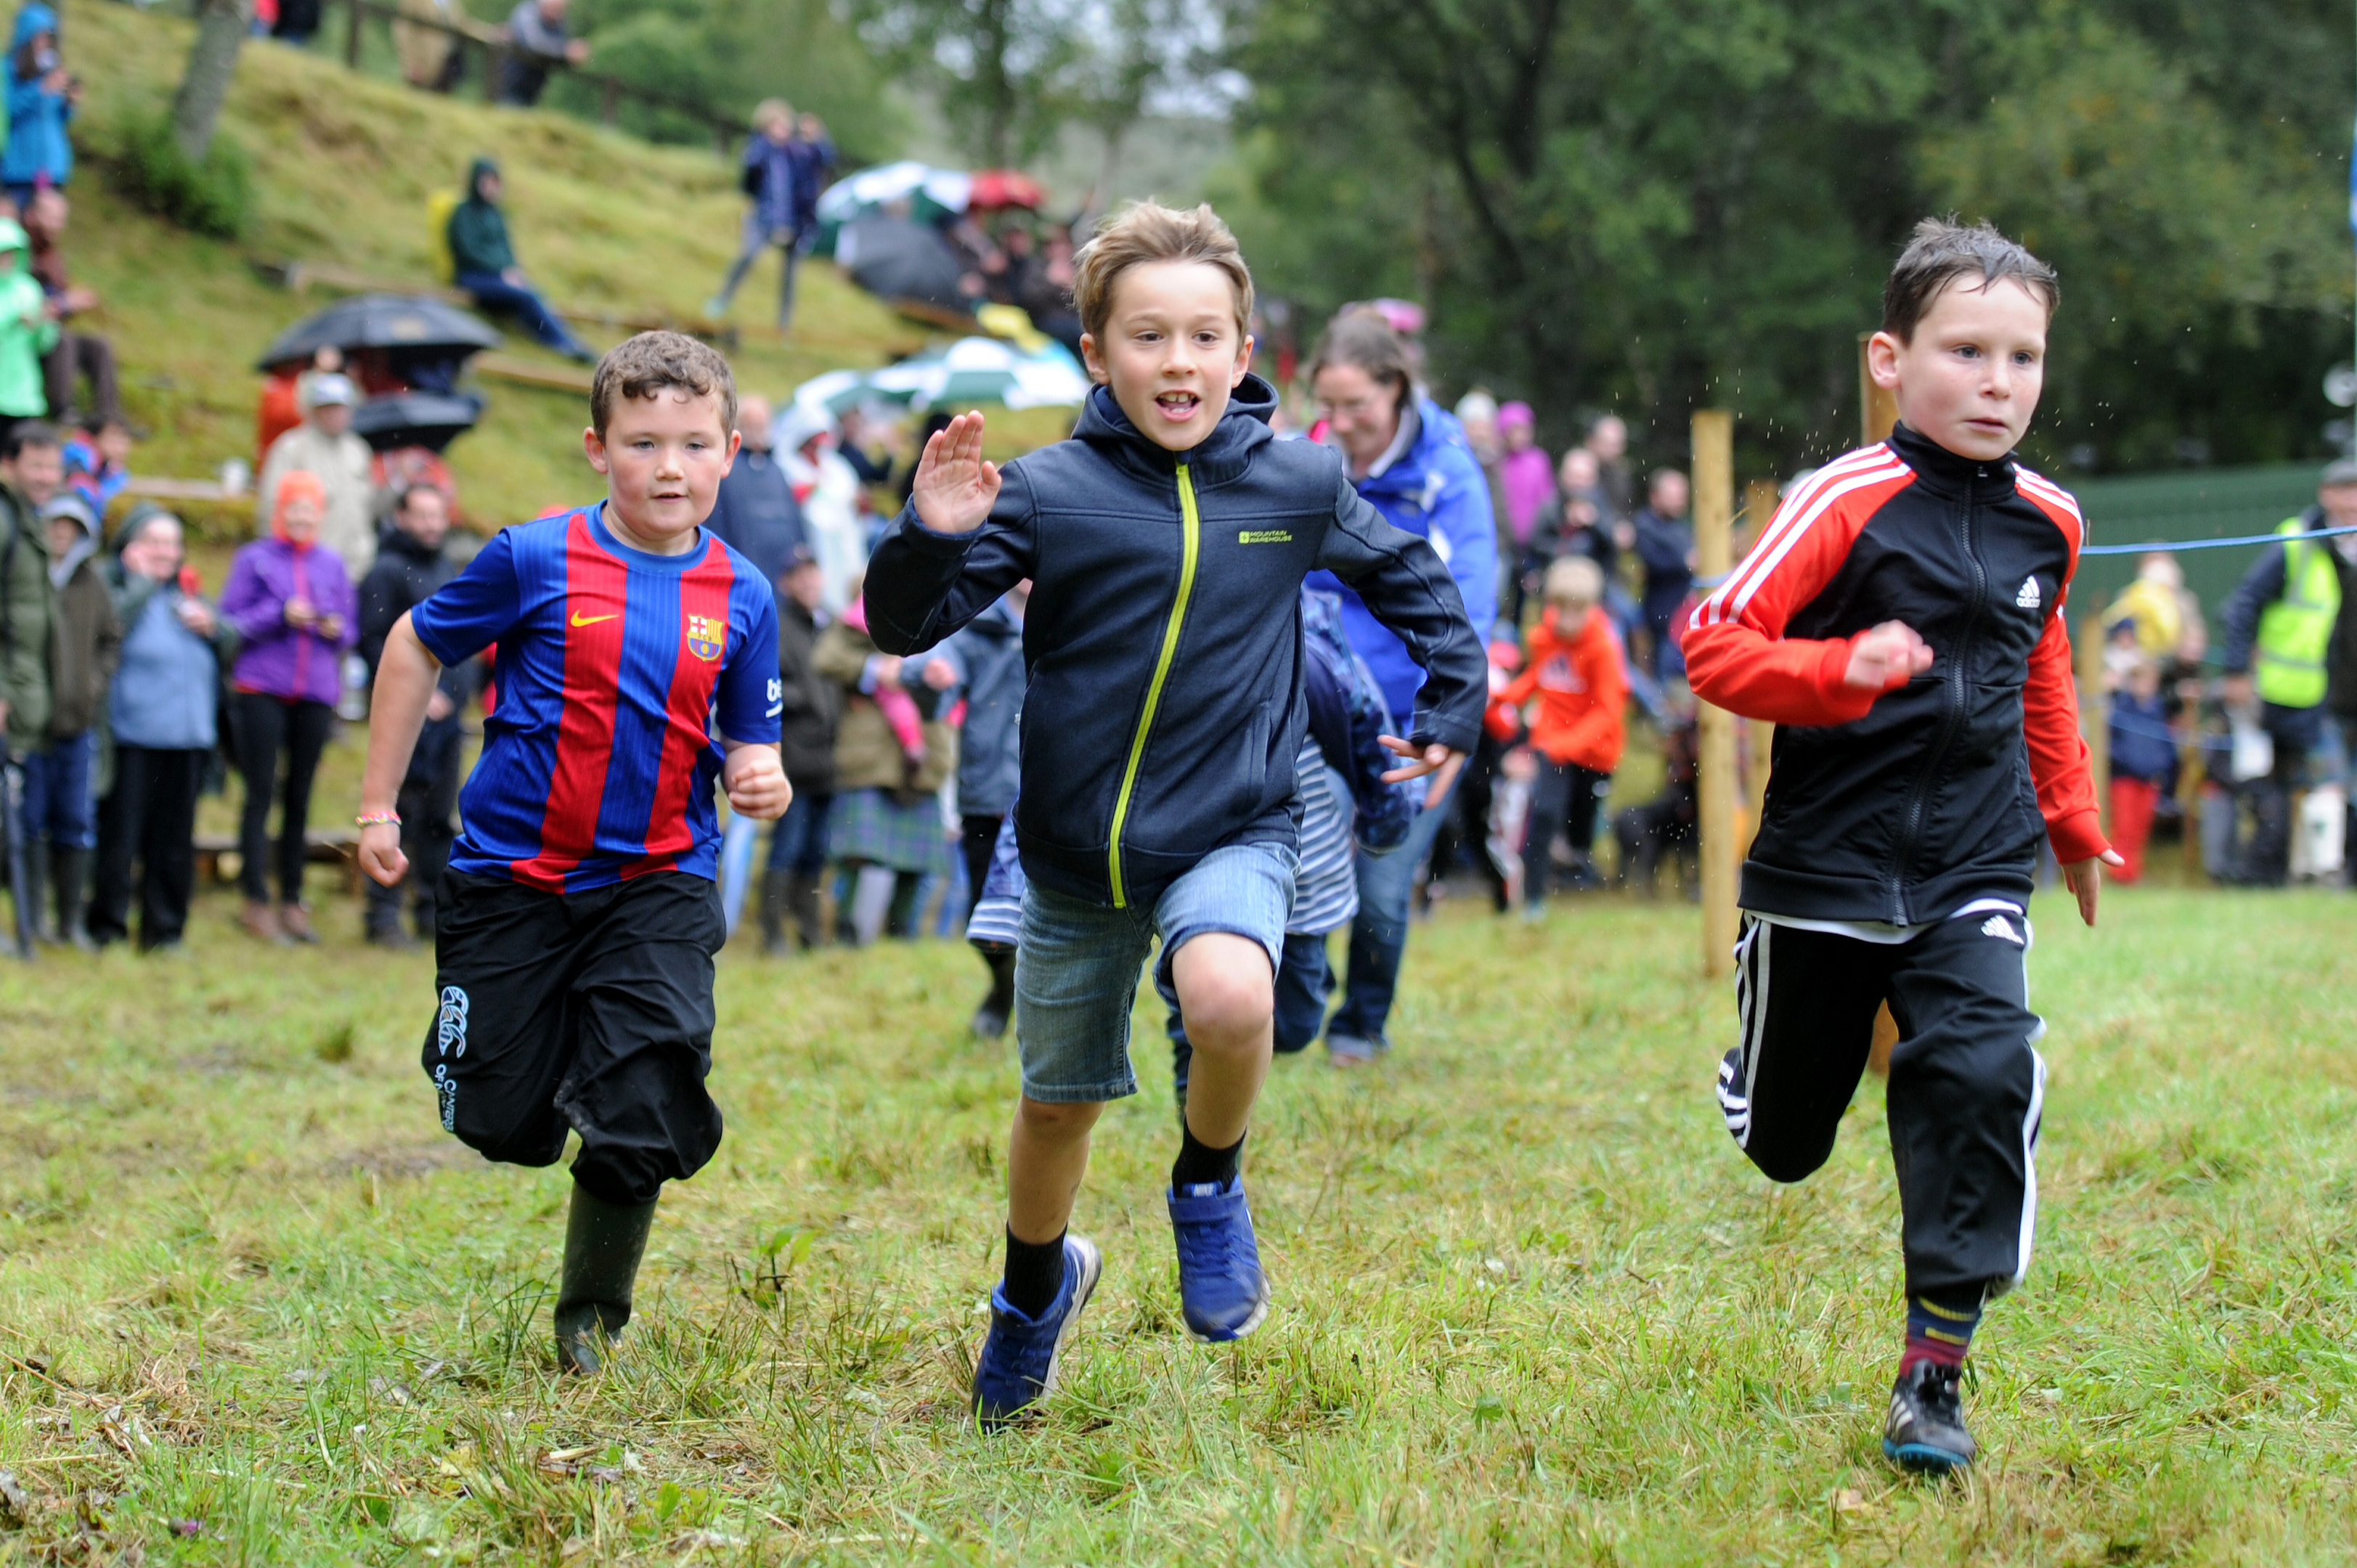 Action from the boys' races